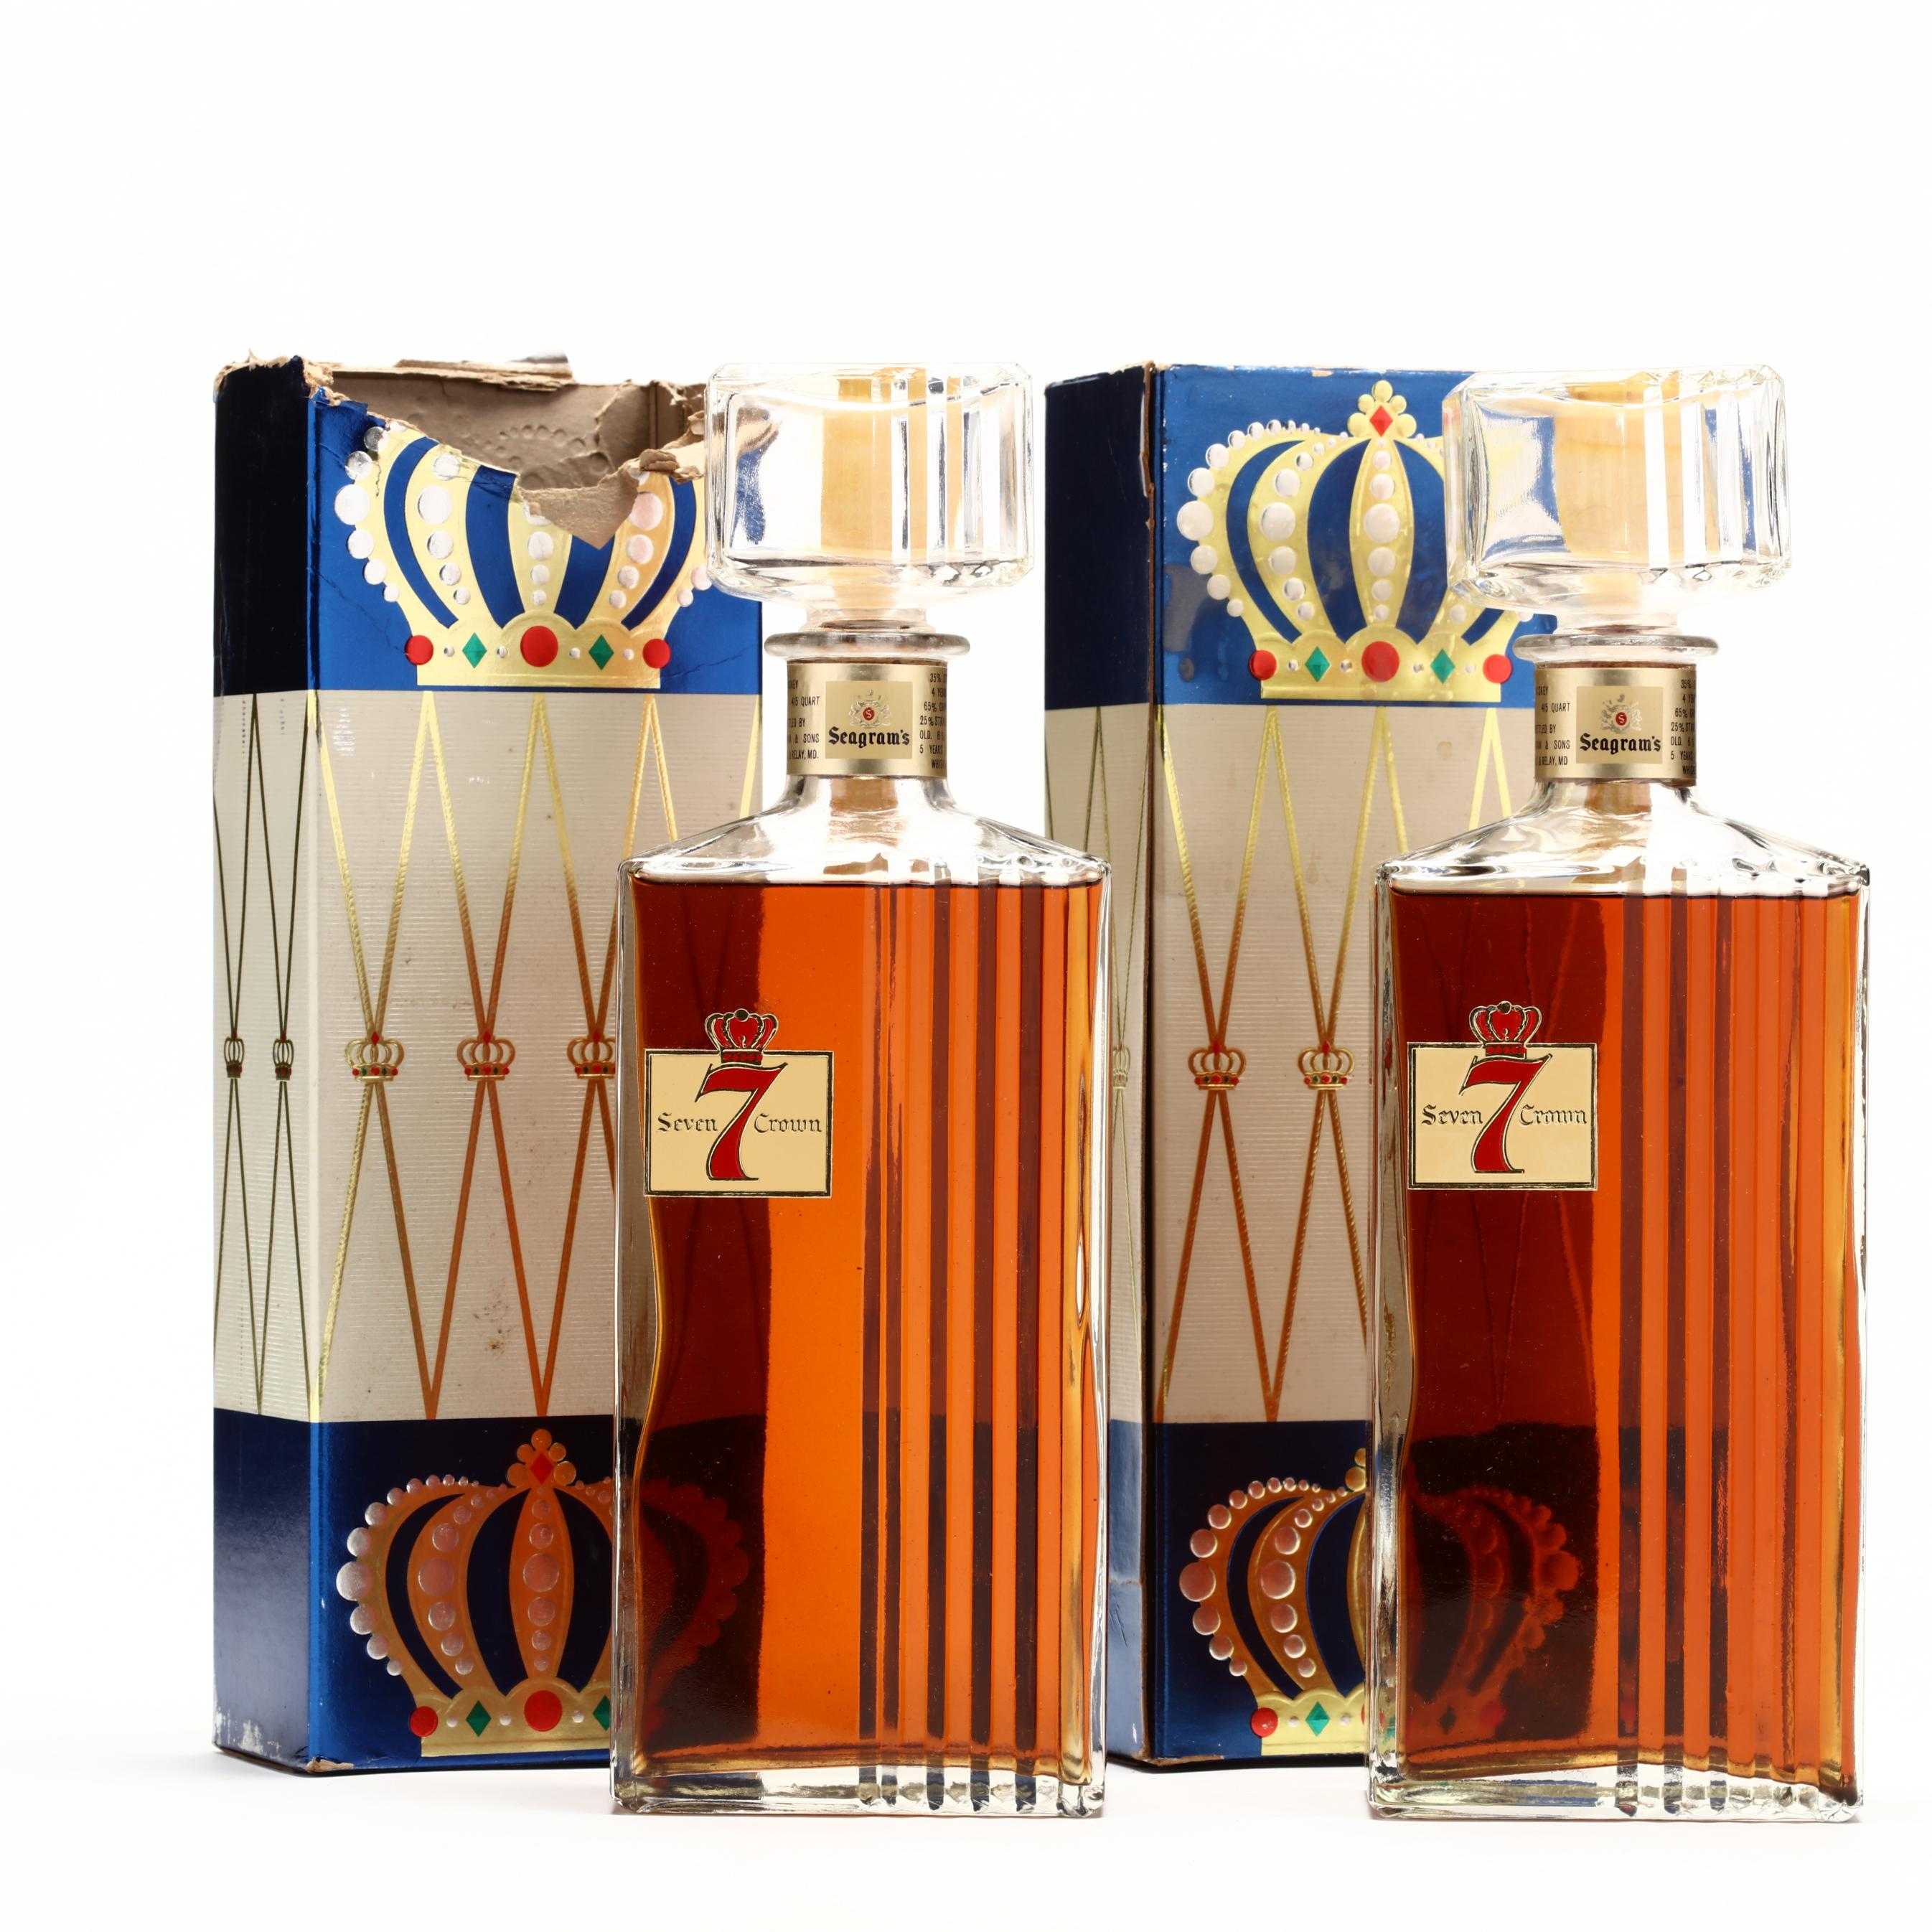 seagram-s-seven-crown-whiskey